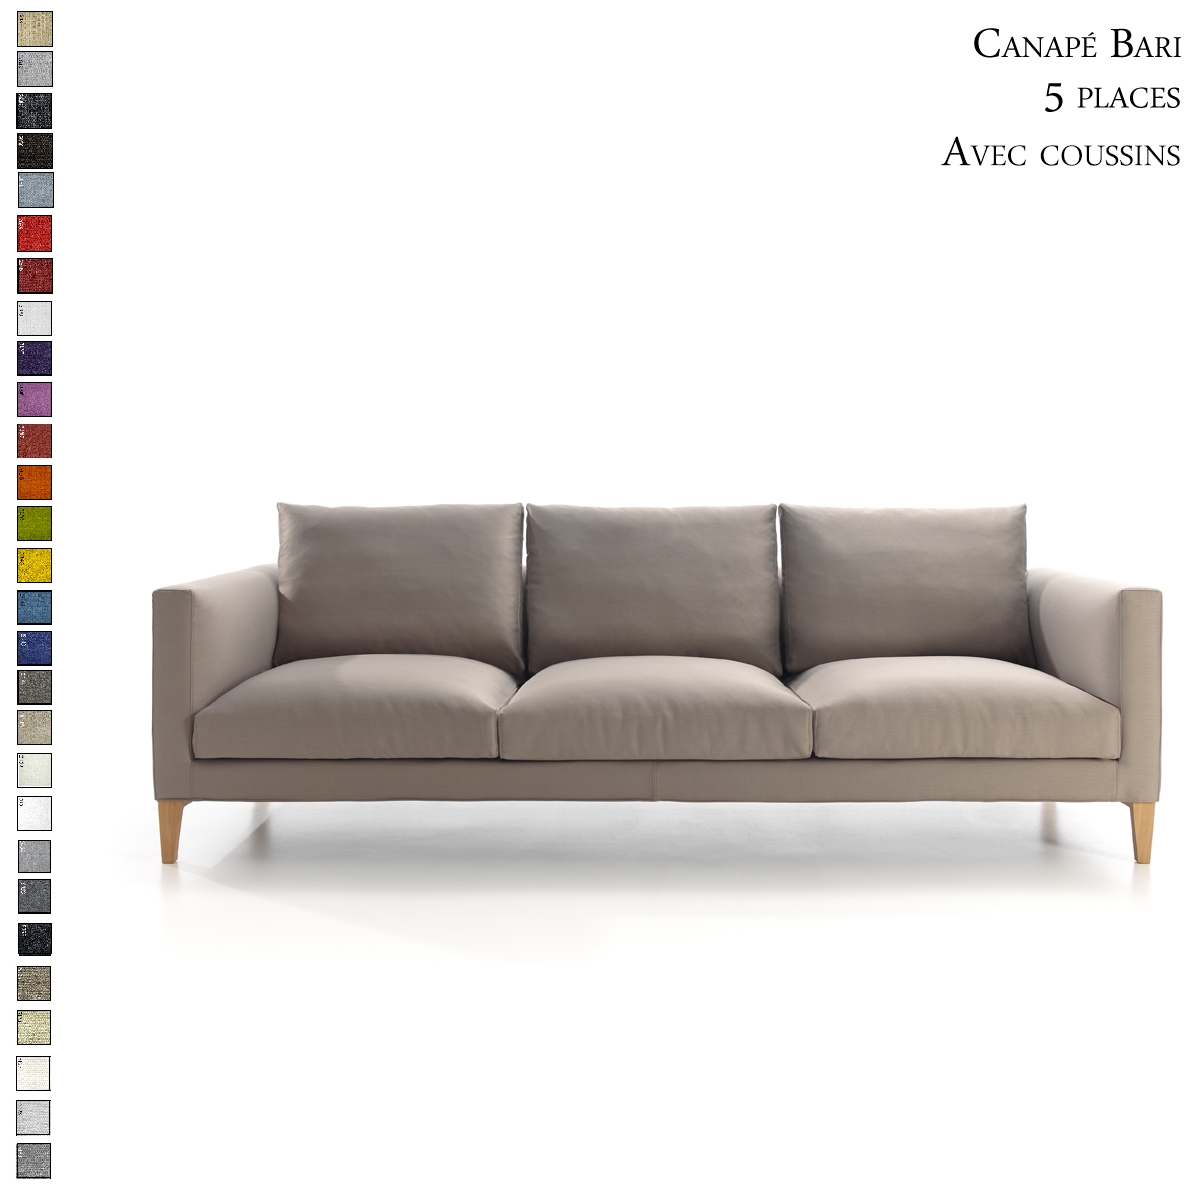 Coussin assise canape for Mousse d assise pour canape